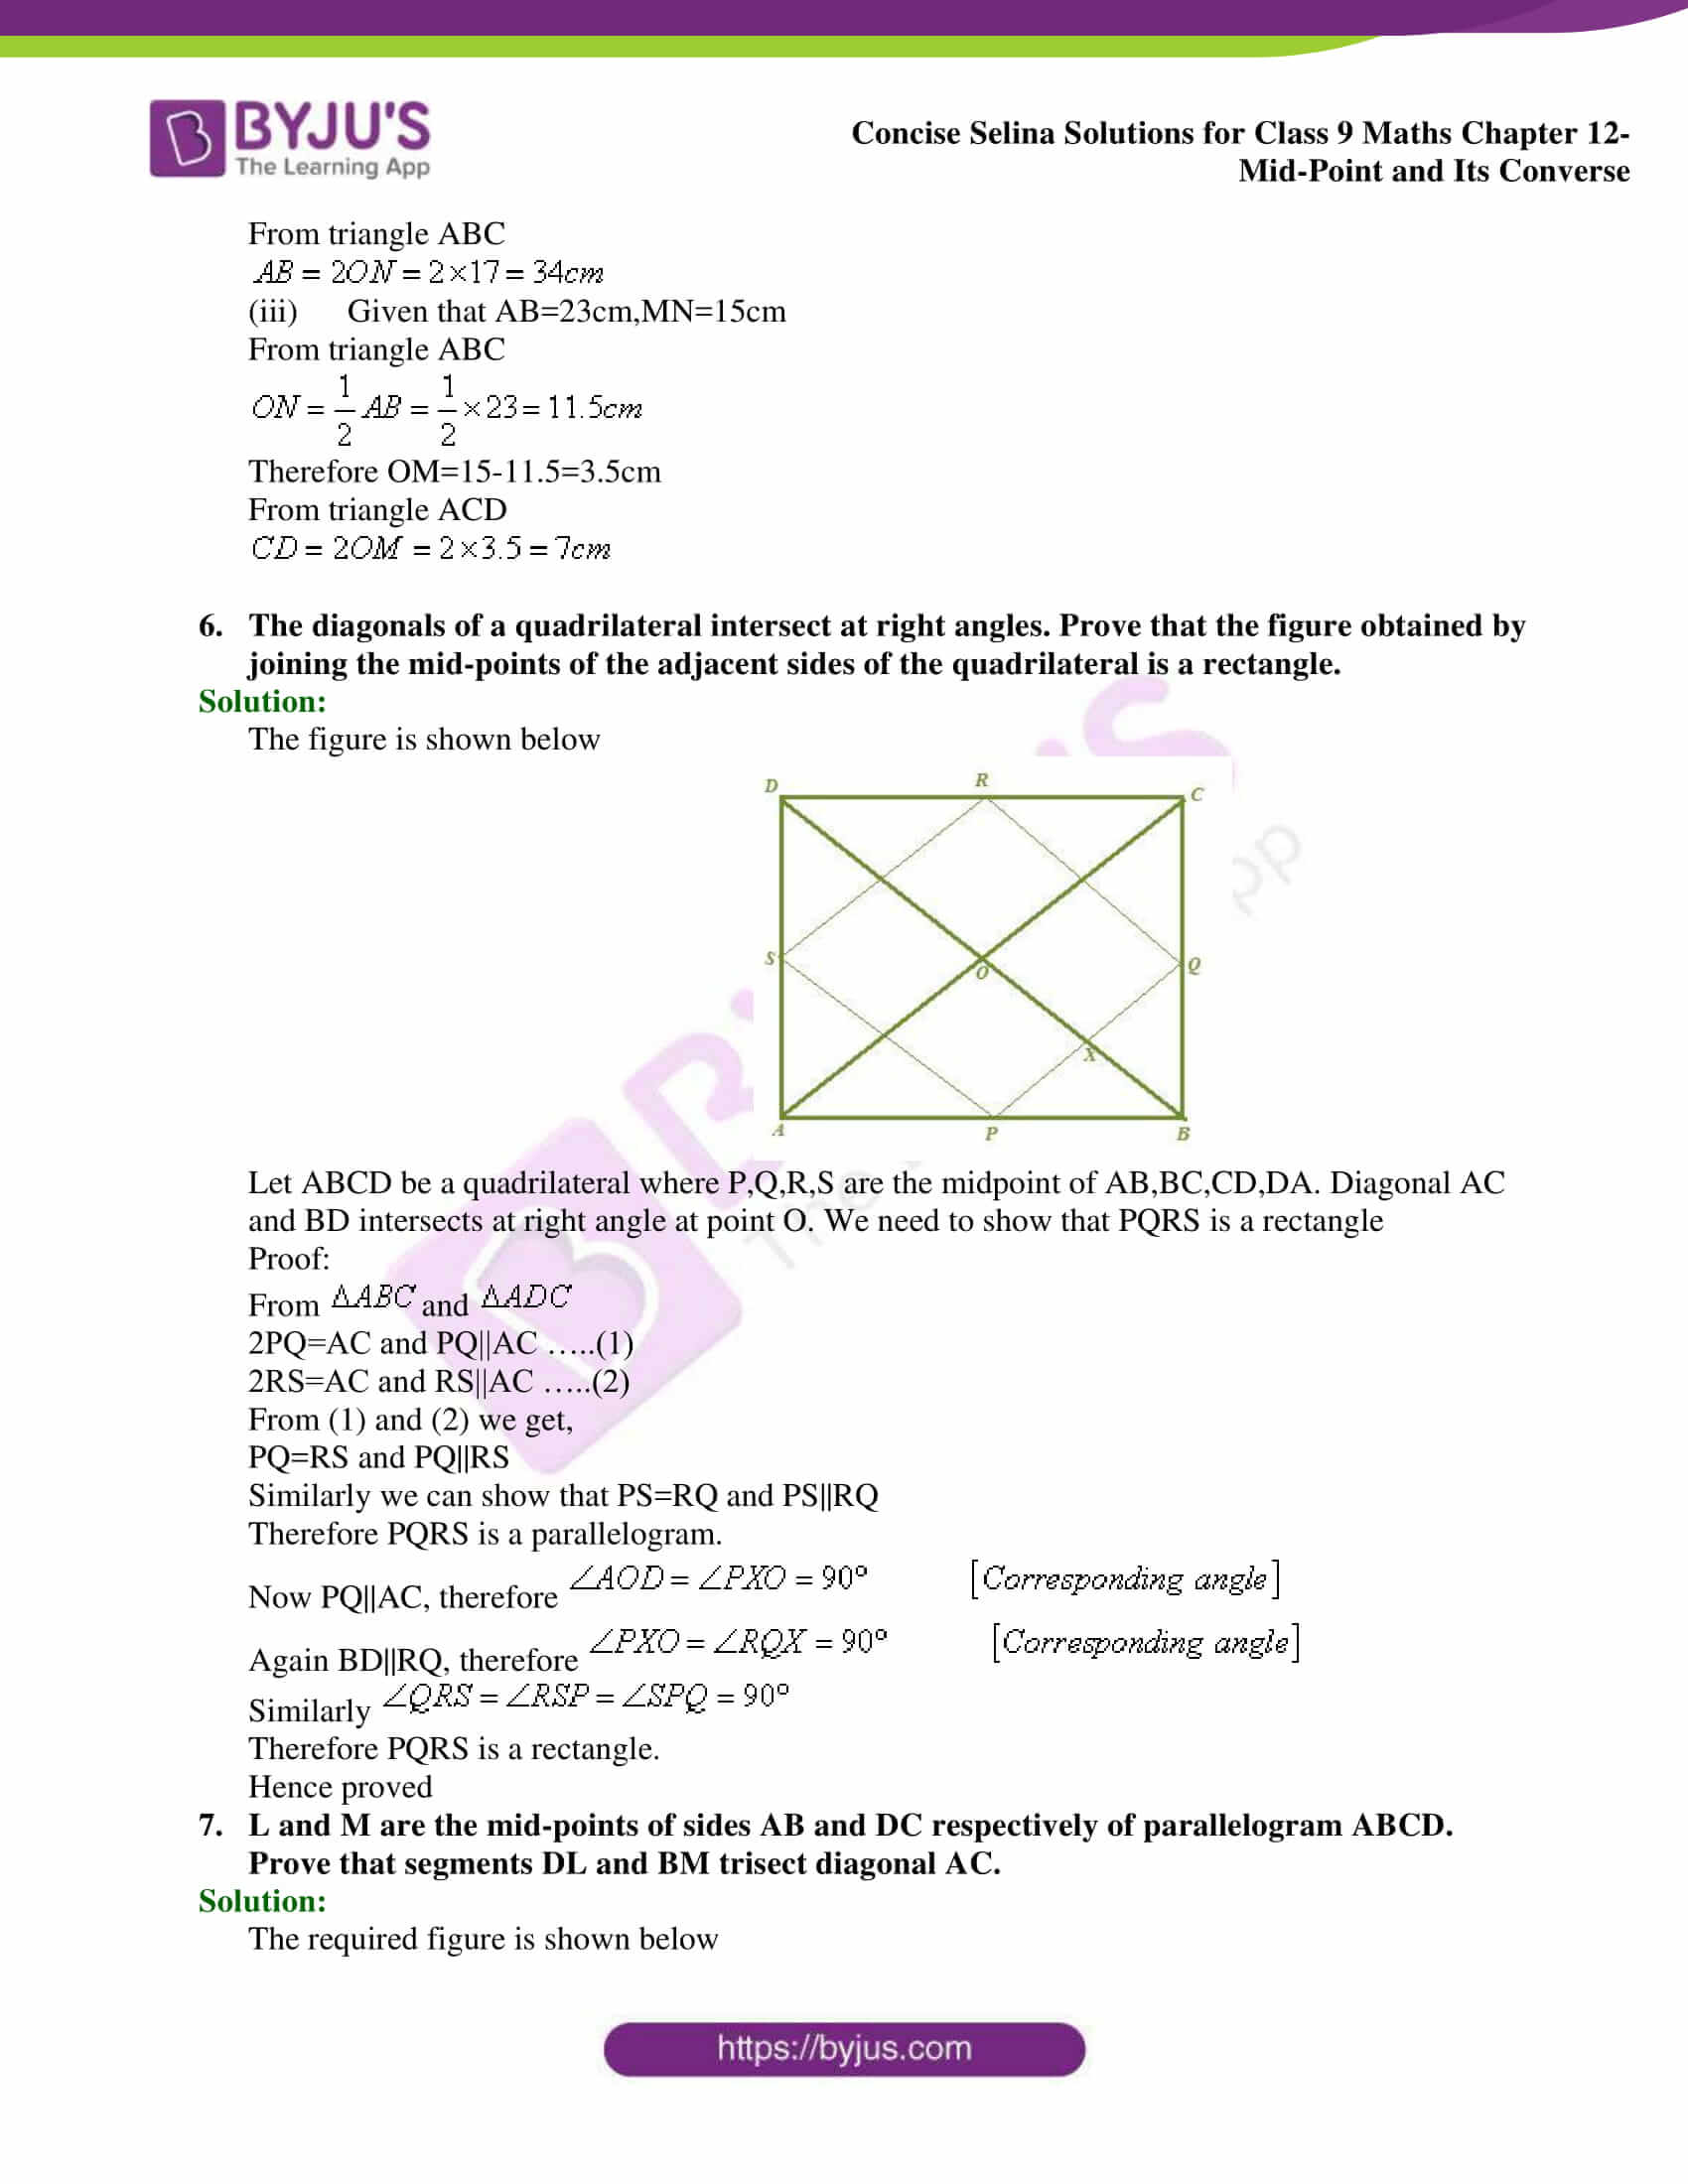 selina Solutions for Class 9 Maths Chapter 12 part 04